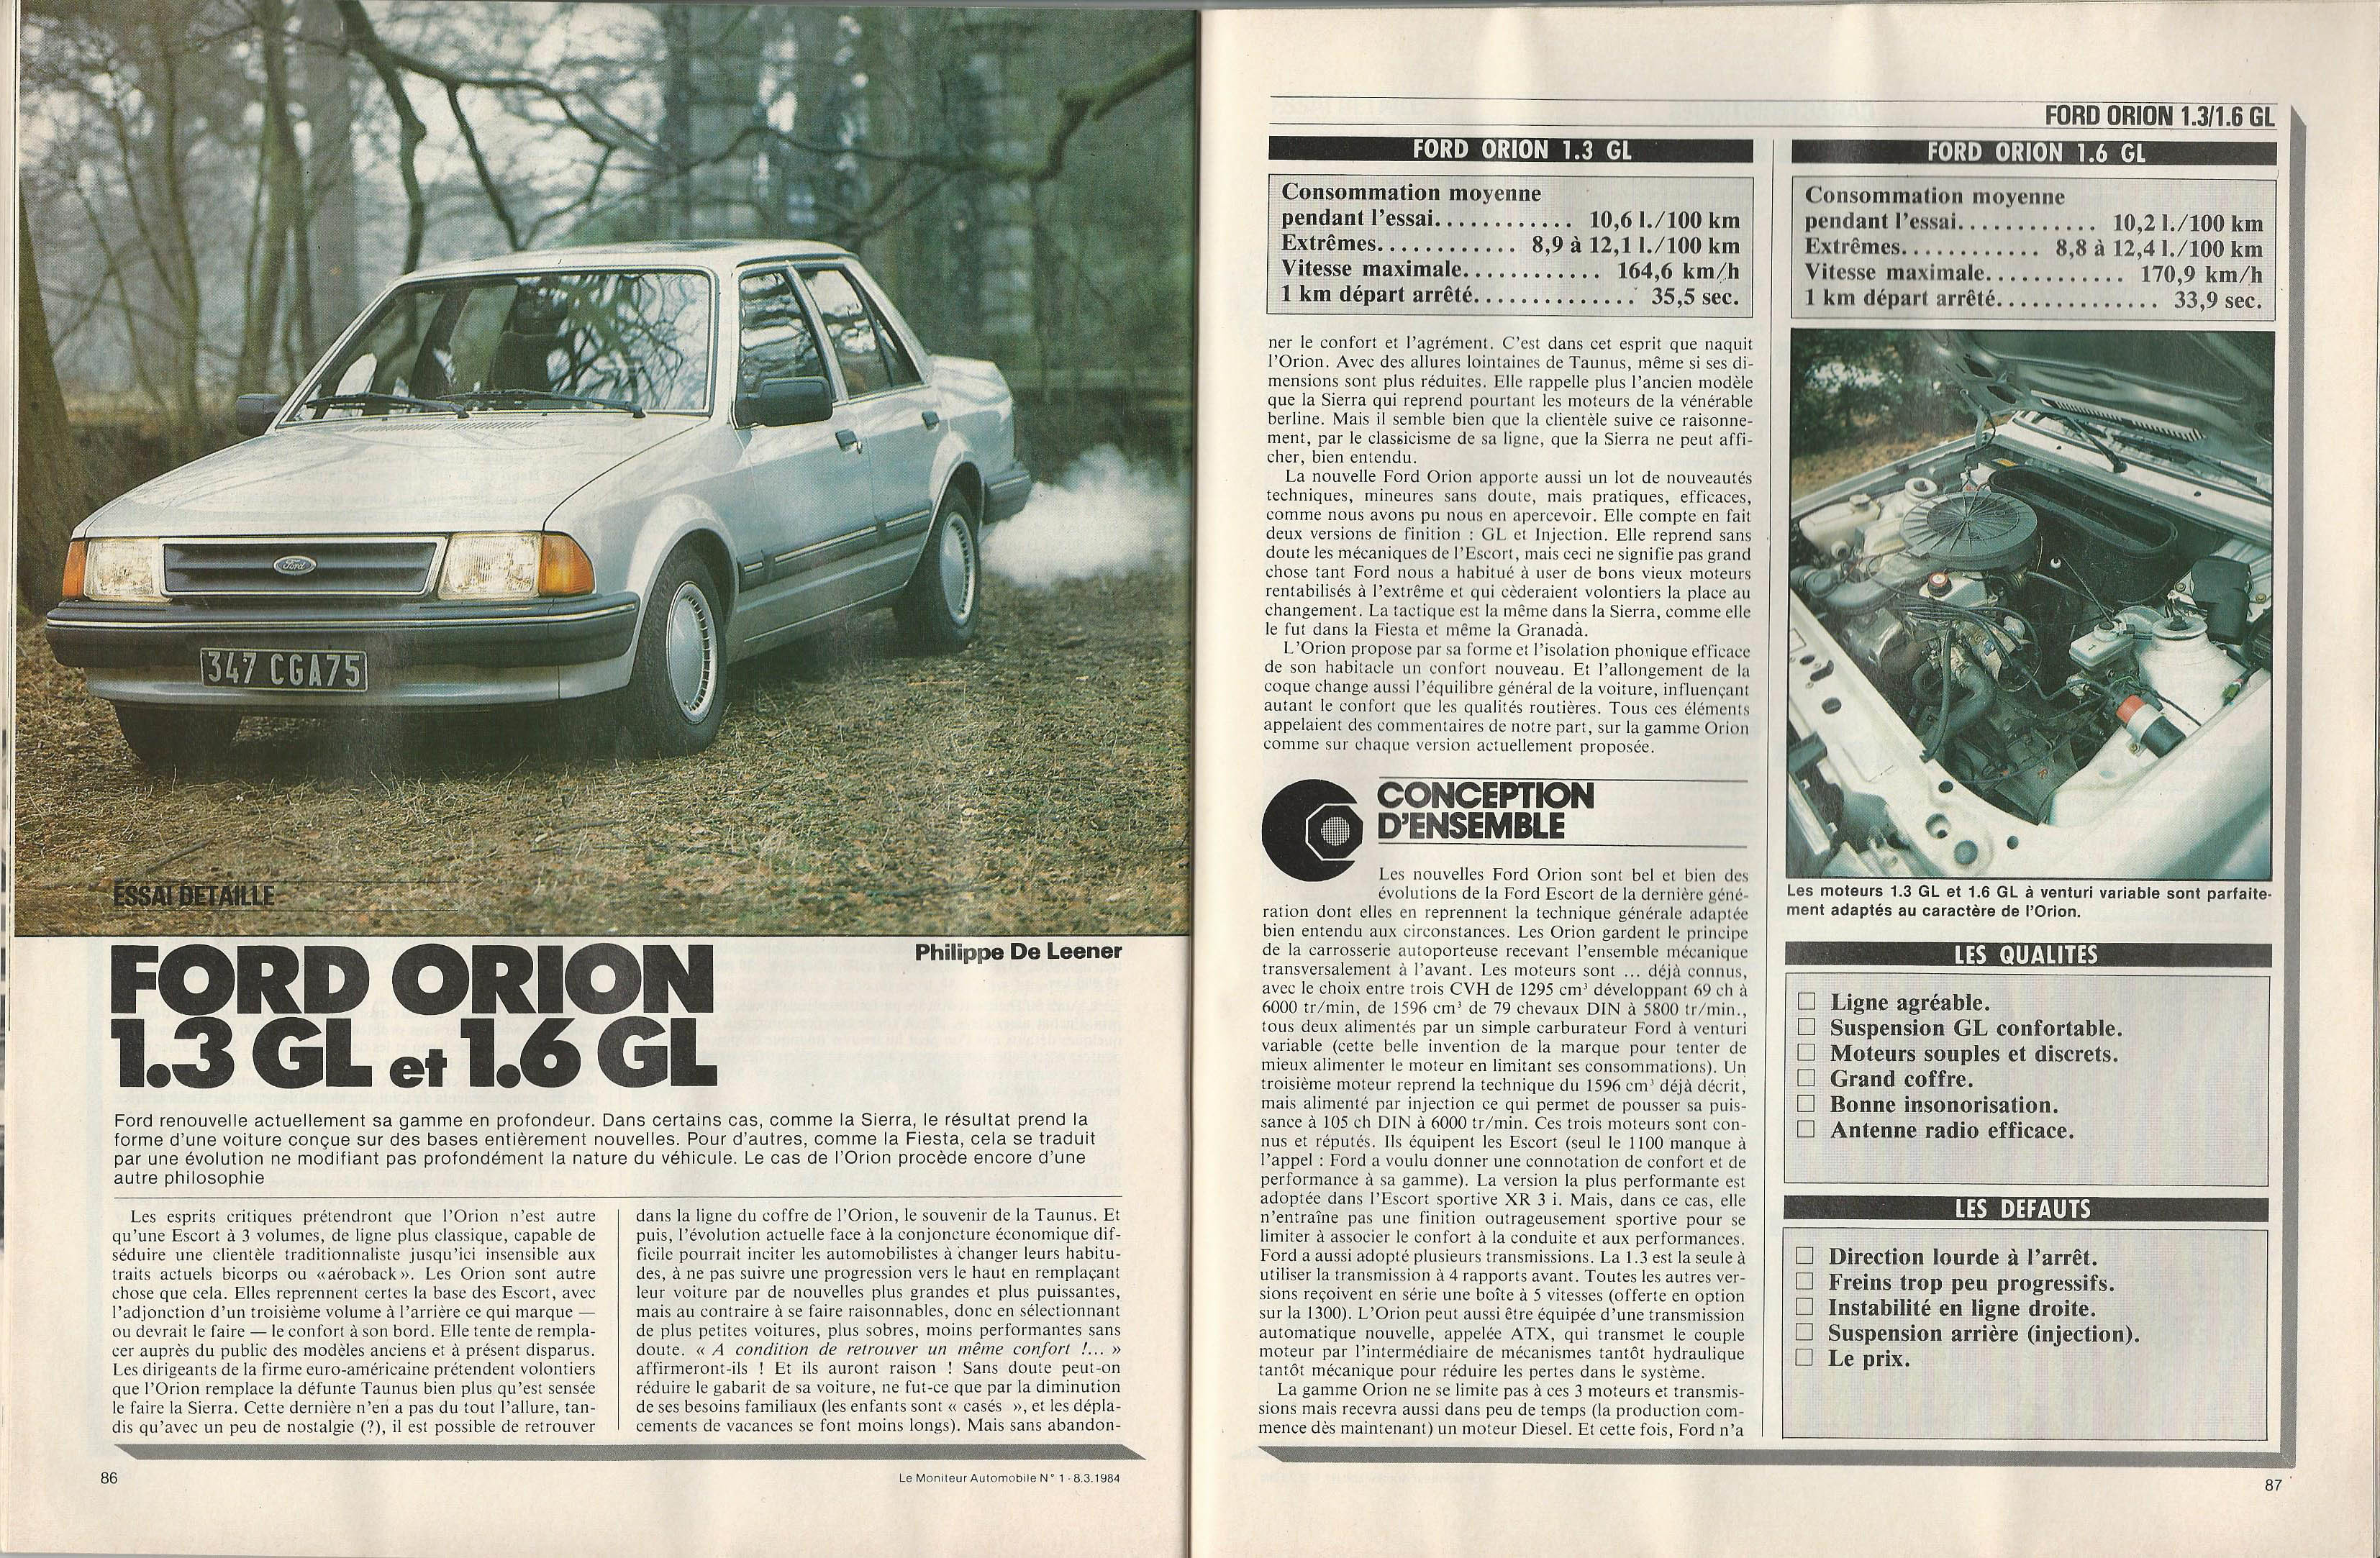 Moniteur Automobile 01 - 08 Mars 1984 (35)